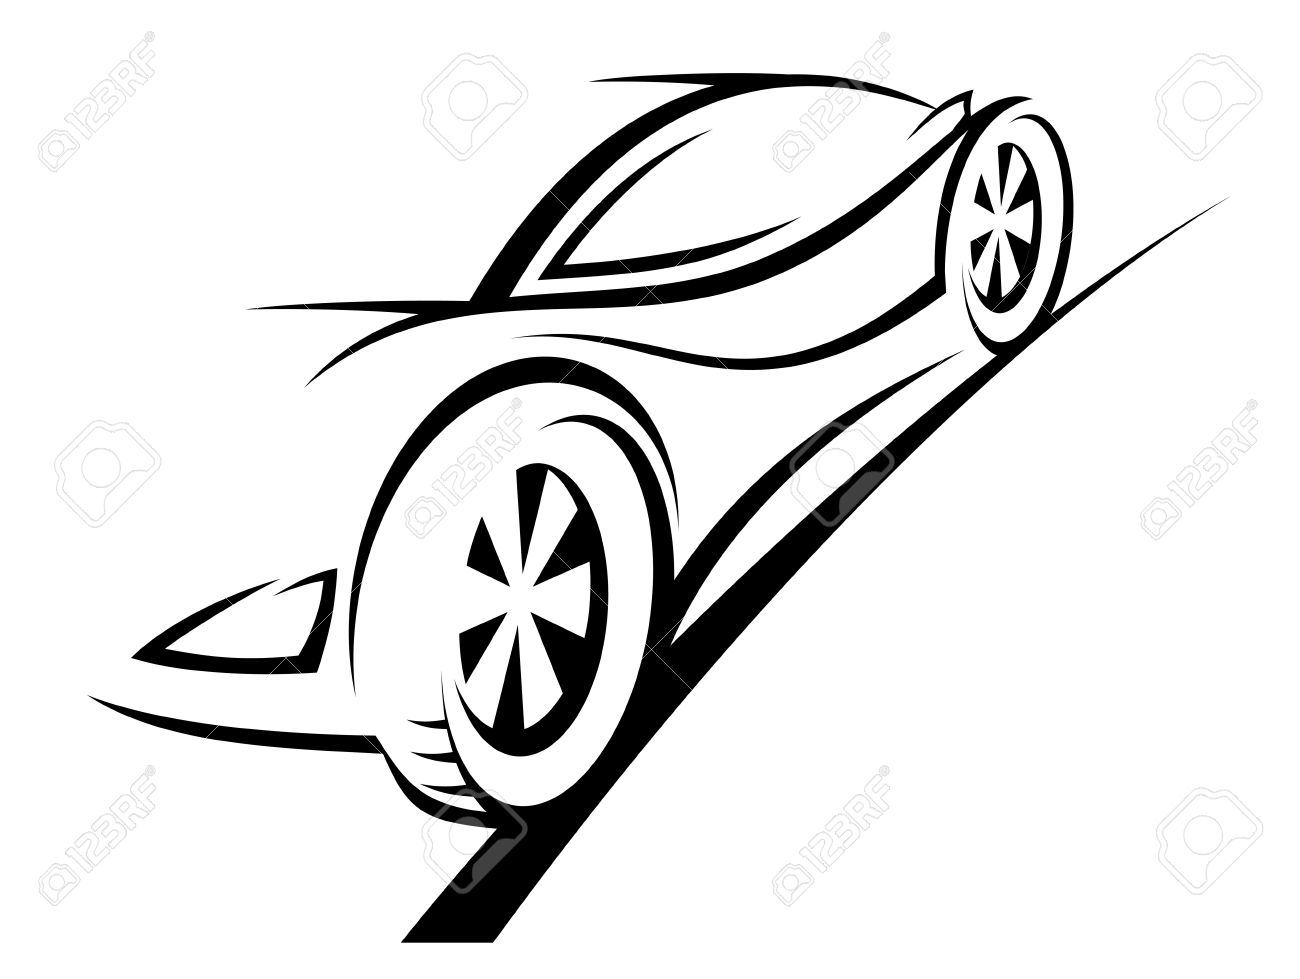 Silhouette of sport car for racing sports design Stock Vector - 12306824